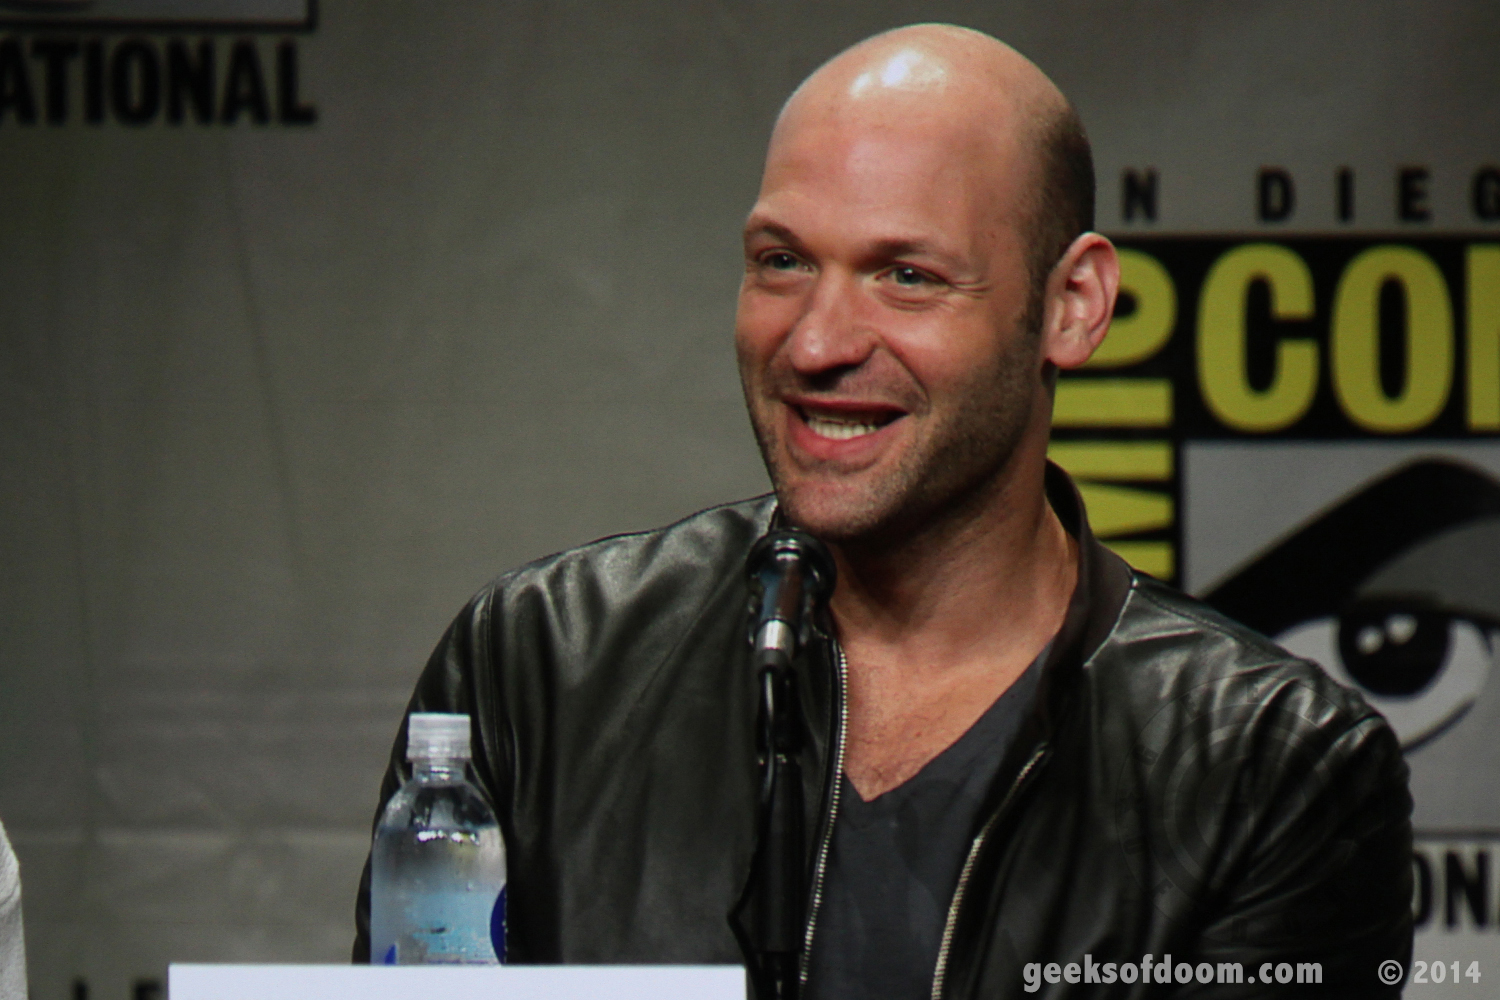 corey stoll homelandcorey stoll wife, corey stoll net worth, corey stoll black mass, corey stoll gold, corey stoll ernest hemingway, corey stoll charmed, corey stoll hemingway, corey stoll height, corey stoll house of cards, corey stoll, corey stoll imdb, corey stoll the strain, corey stoll homeland, corey stoll twitter, corey stoll midnight in paris, corey stoll ant man, corey stoll non stop, corey stoll married, corey stoll wig, corey stoll movies and tv shows